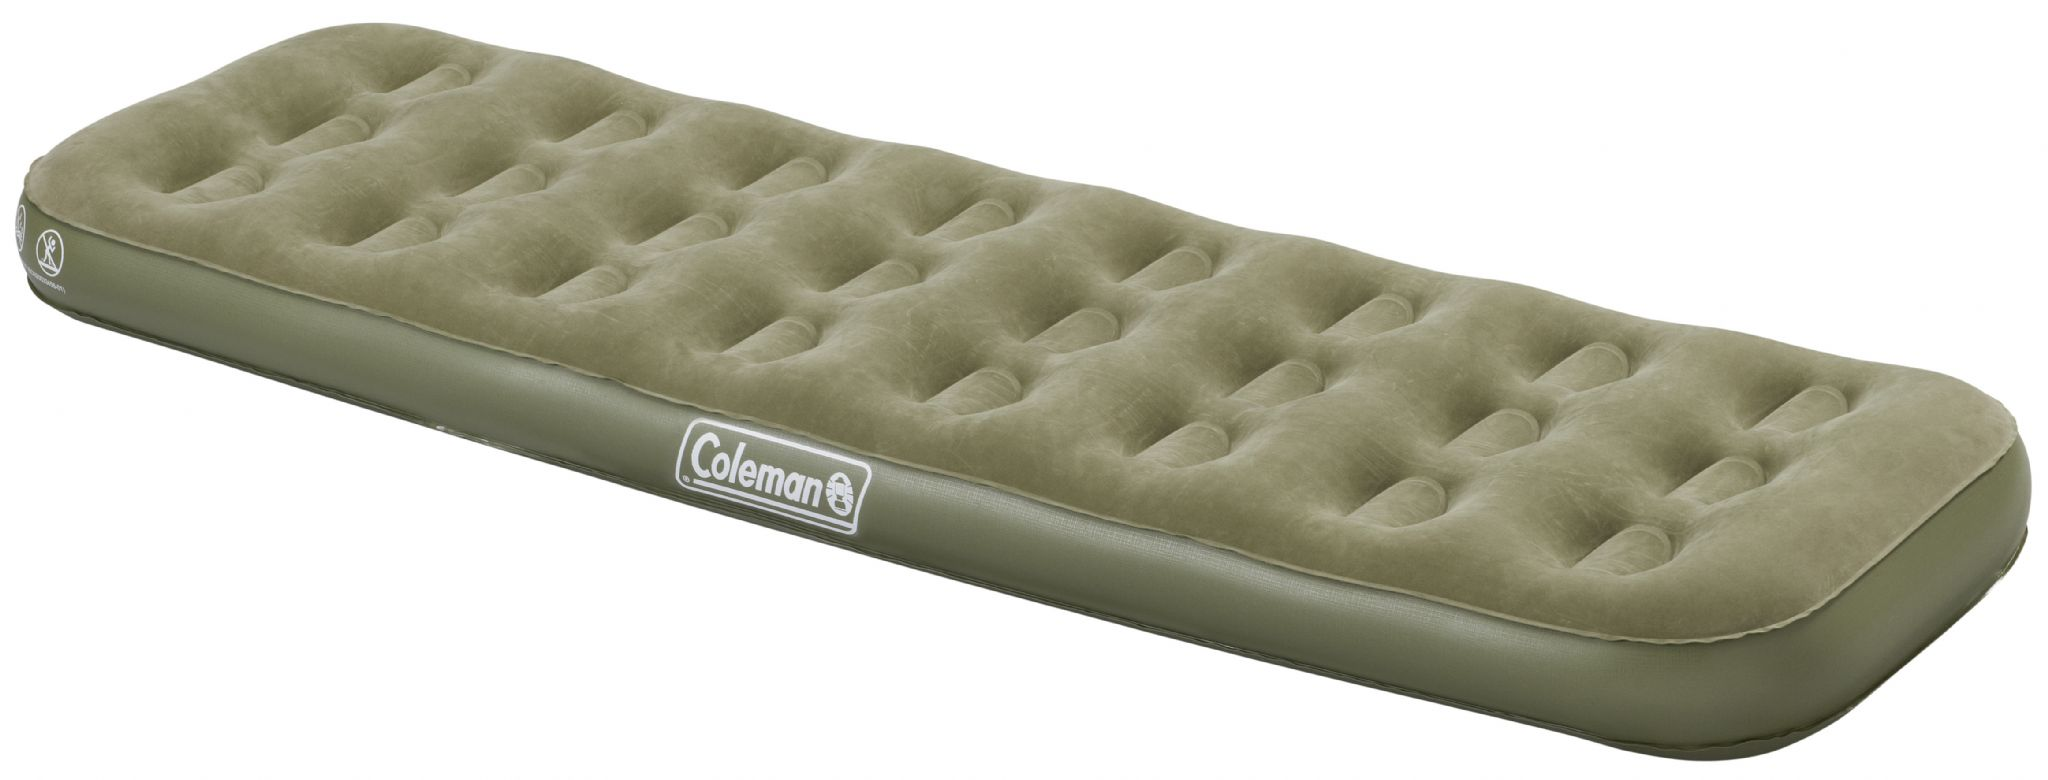 single air mattress